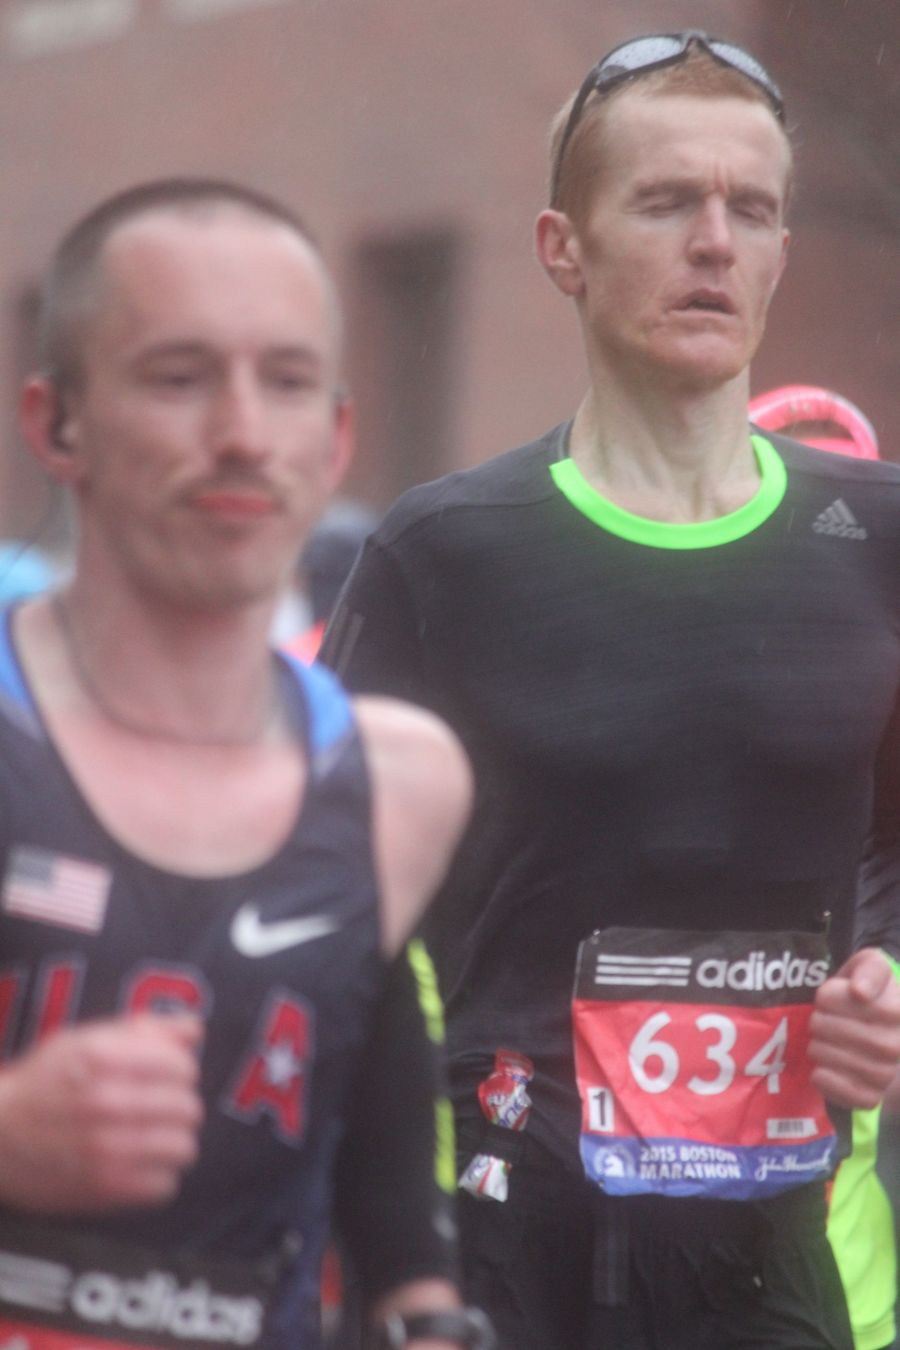 boston marathon april 20 2015 racer number 634 with eyes closed